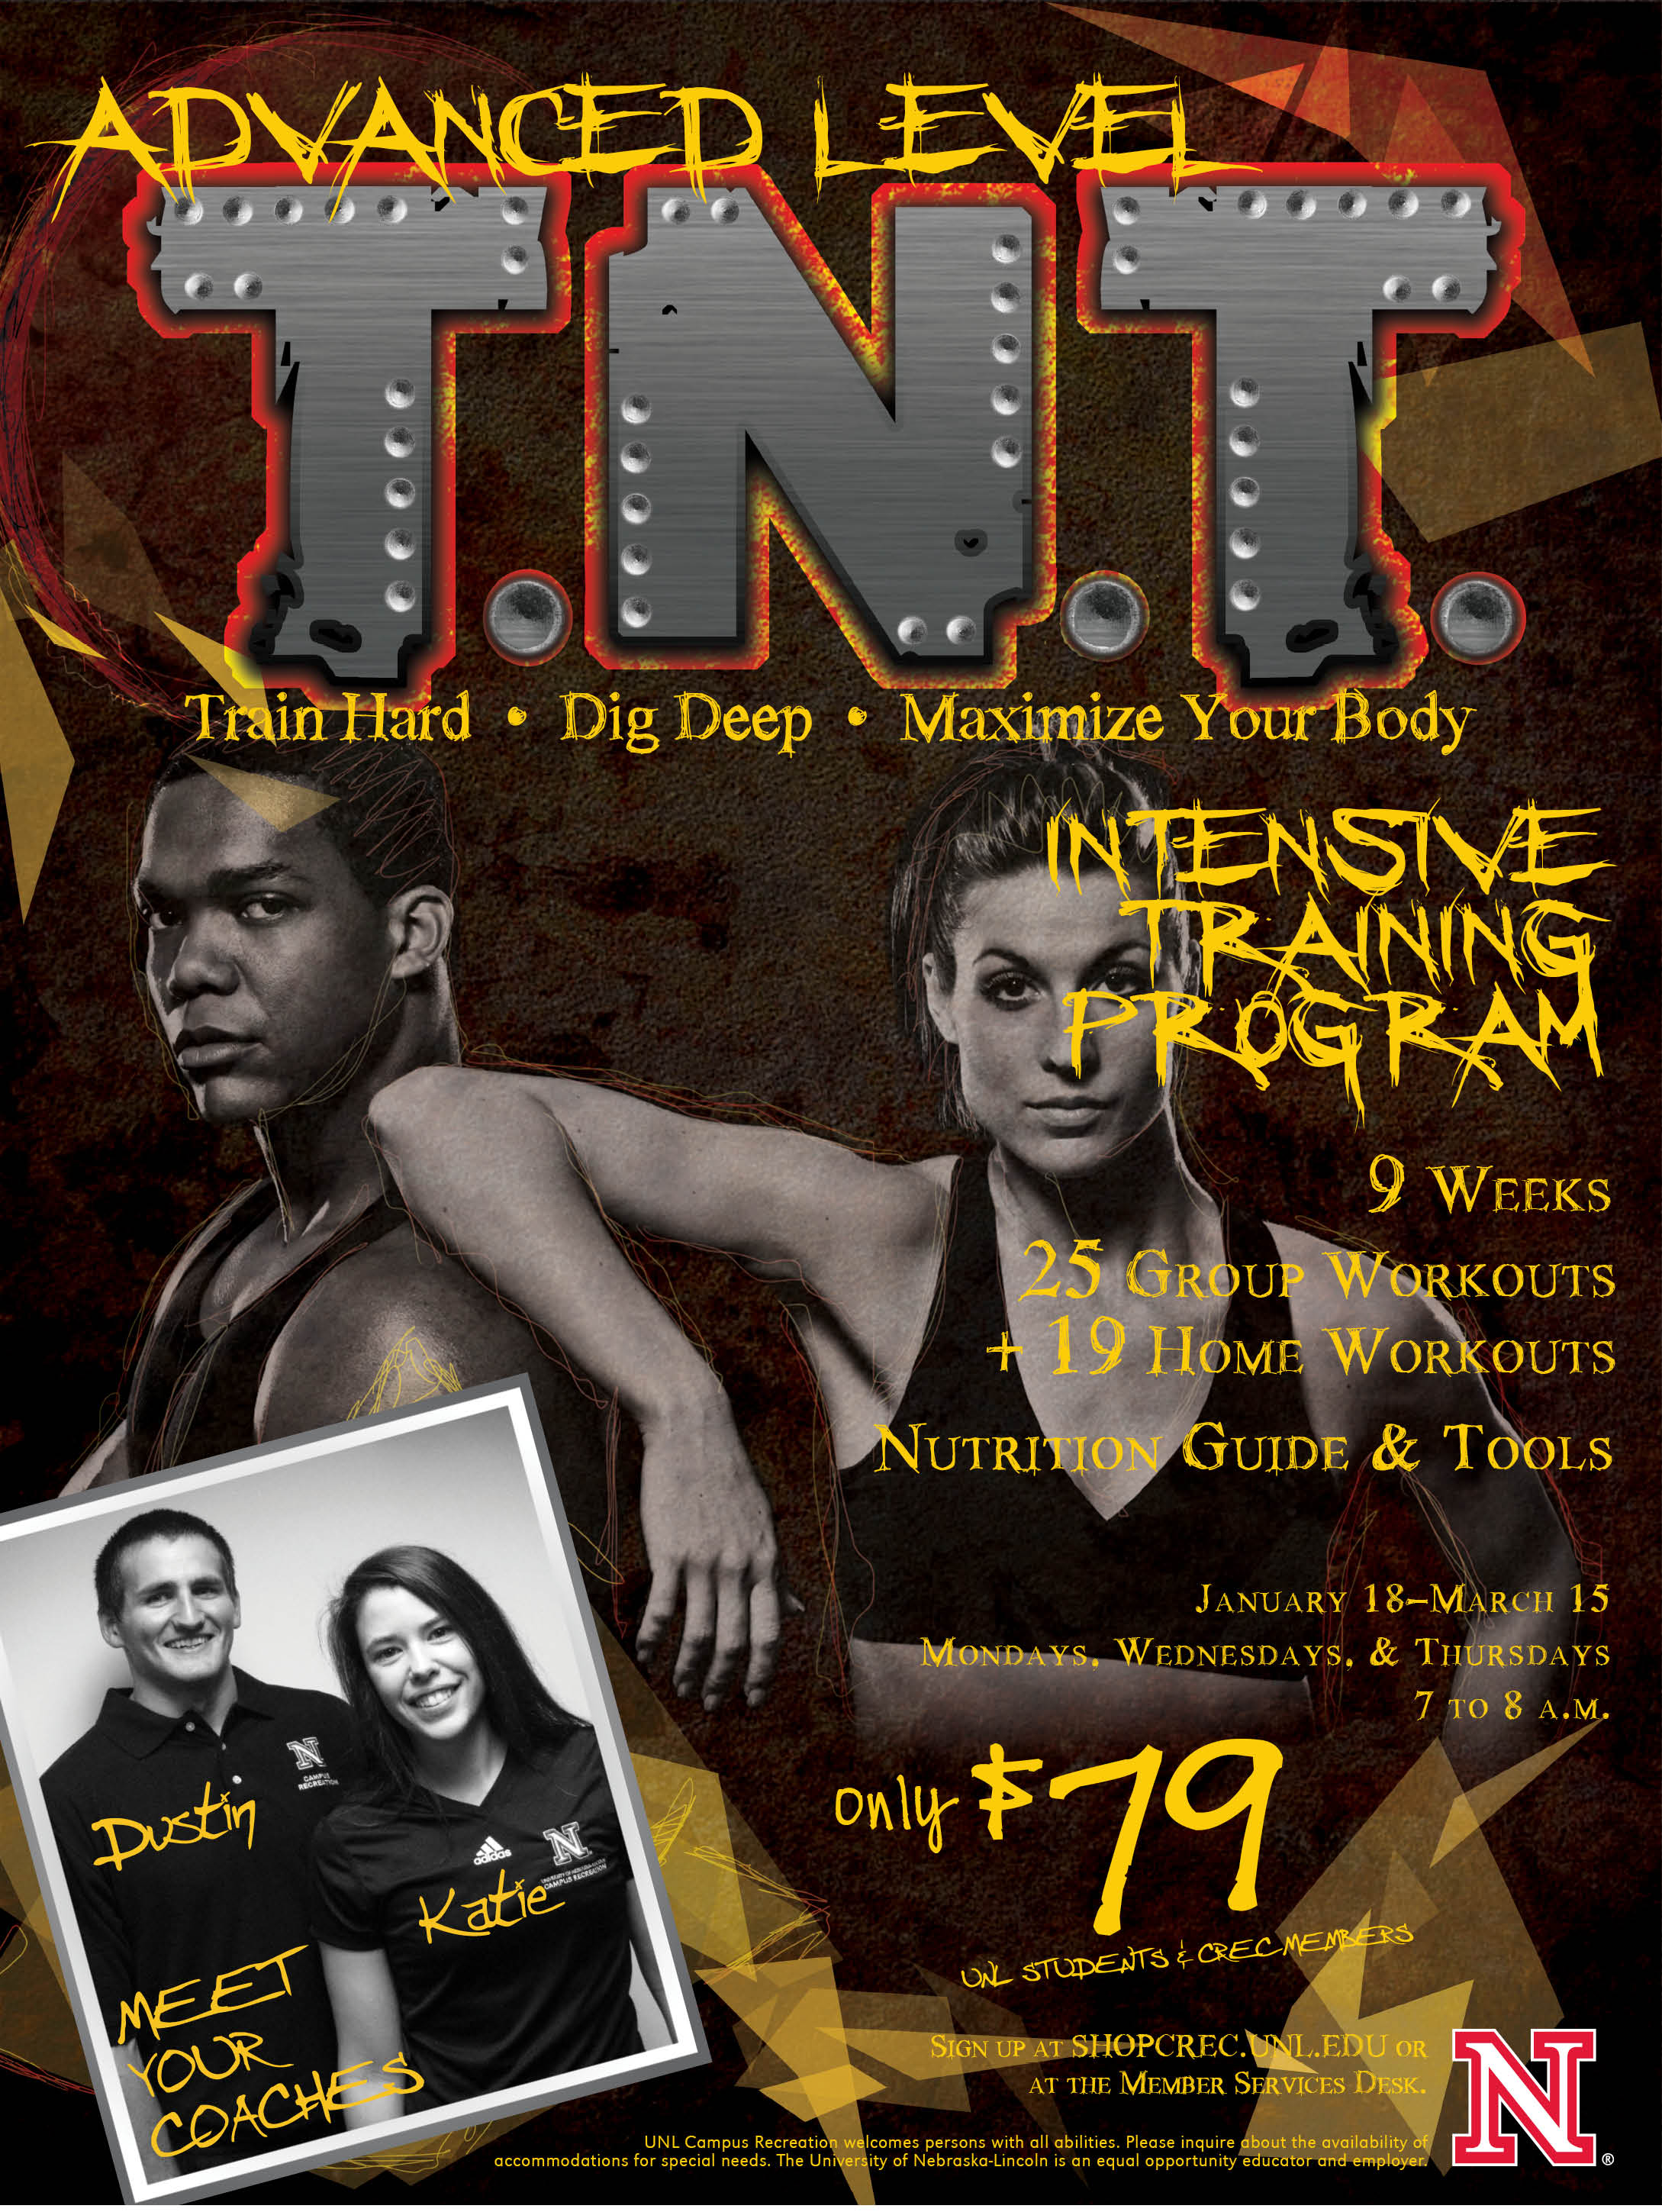 T.N.T. fitness program last nine weeks and will conclude right before Spring Break.